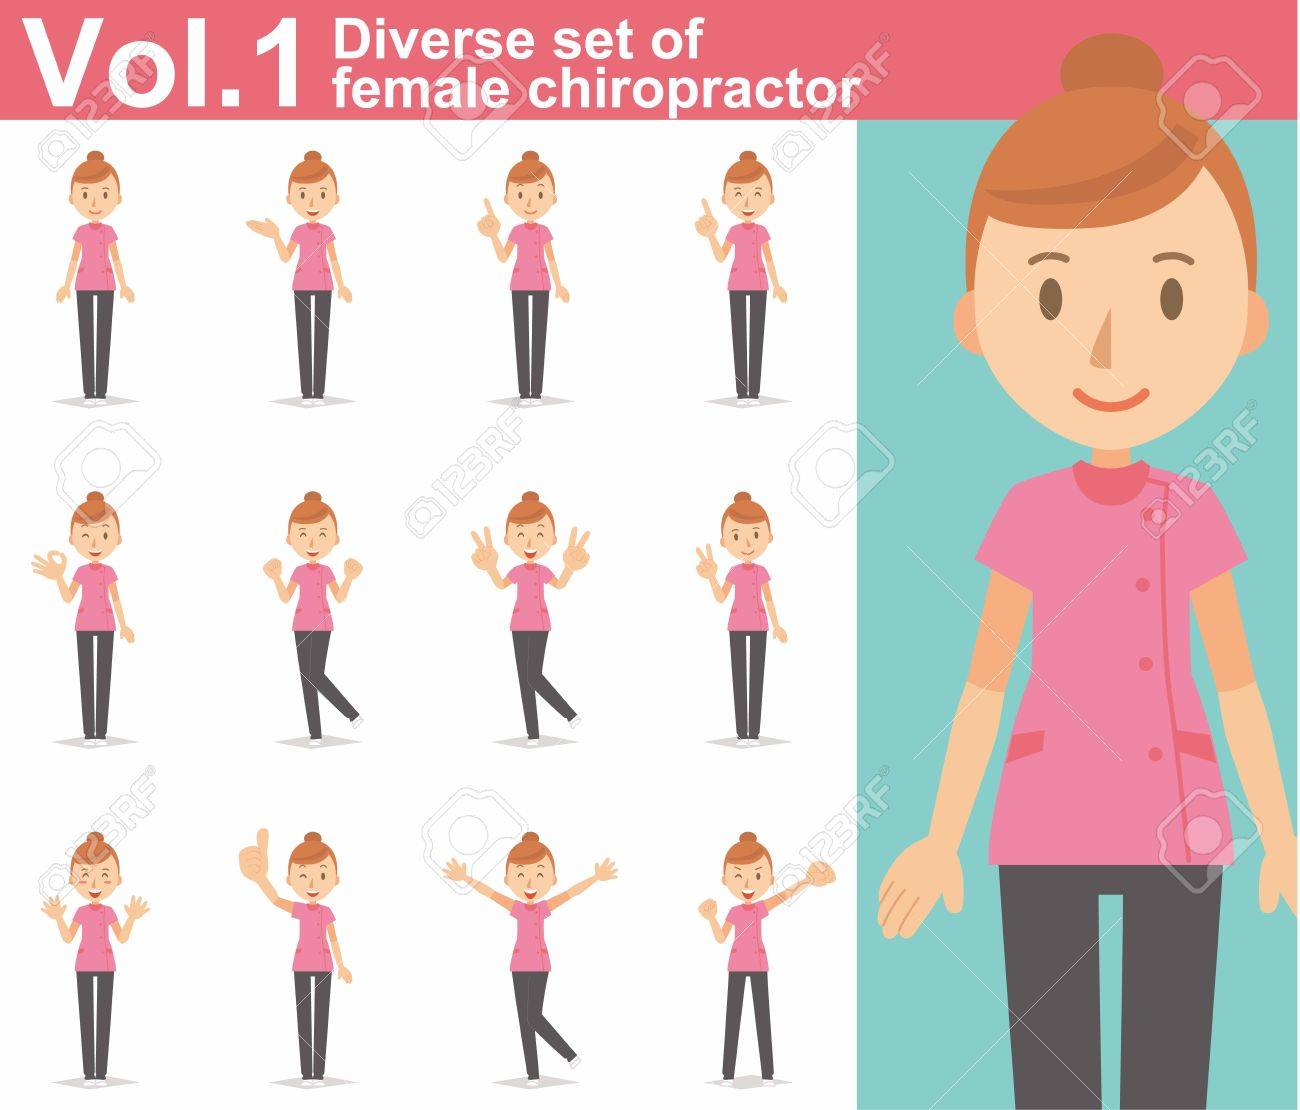 Diverse set of female chiropractor on white background - 62103361